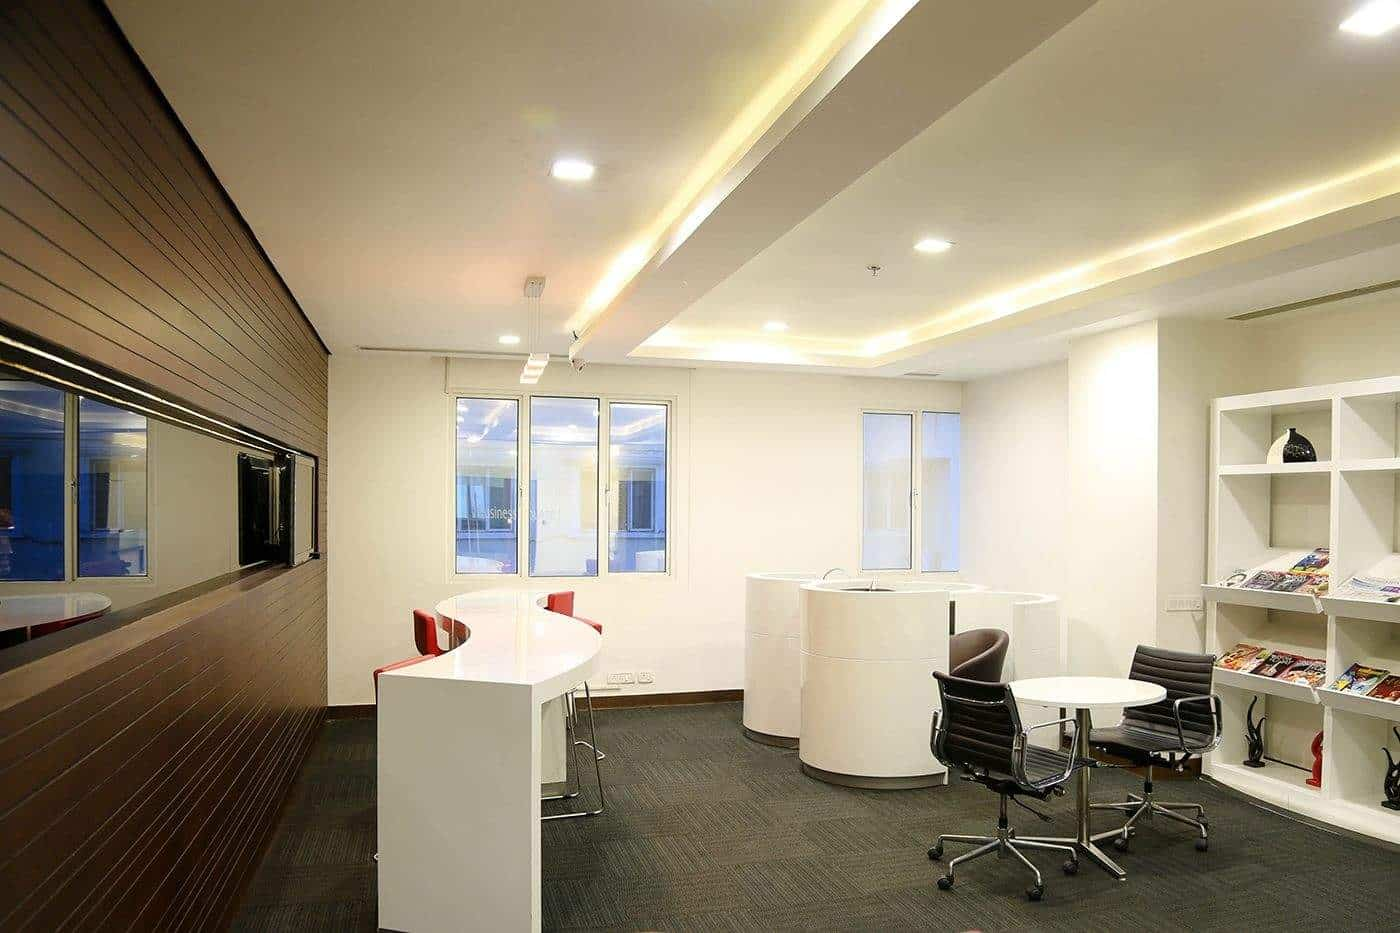 Regus Business Centre, Mylapore - Business Centres in